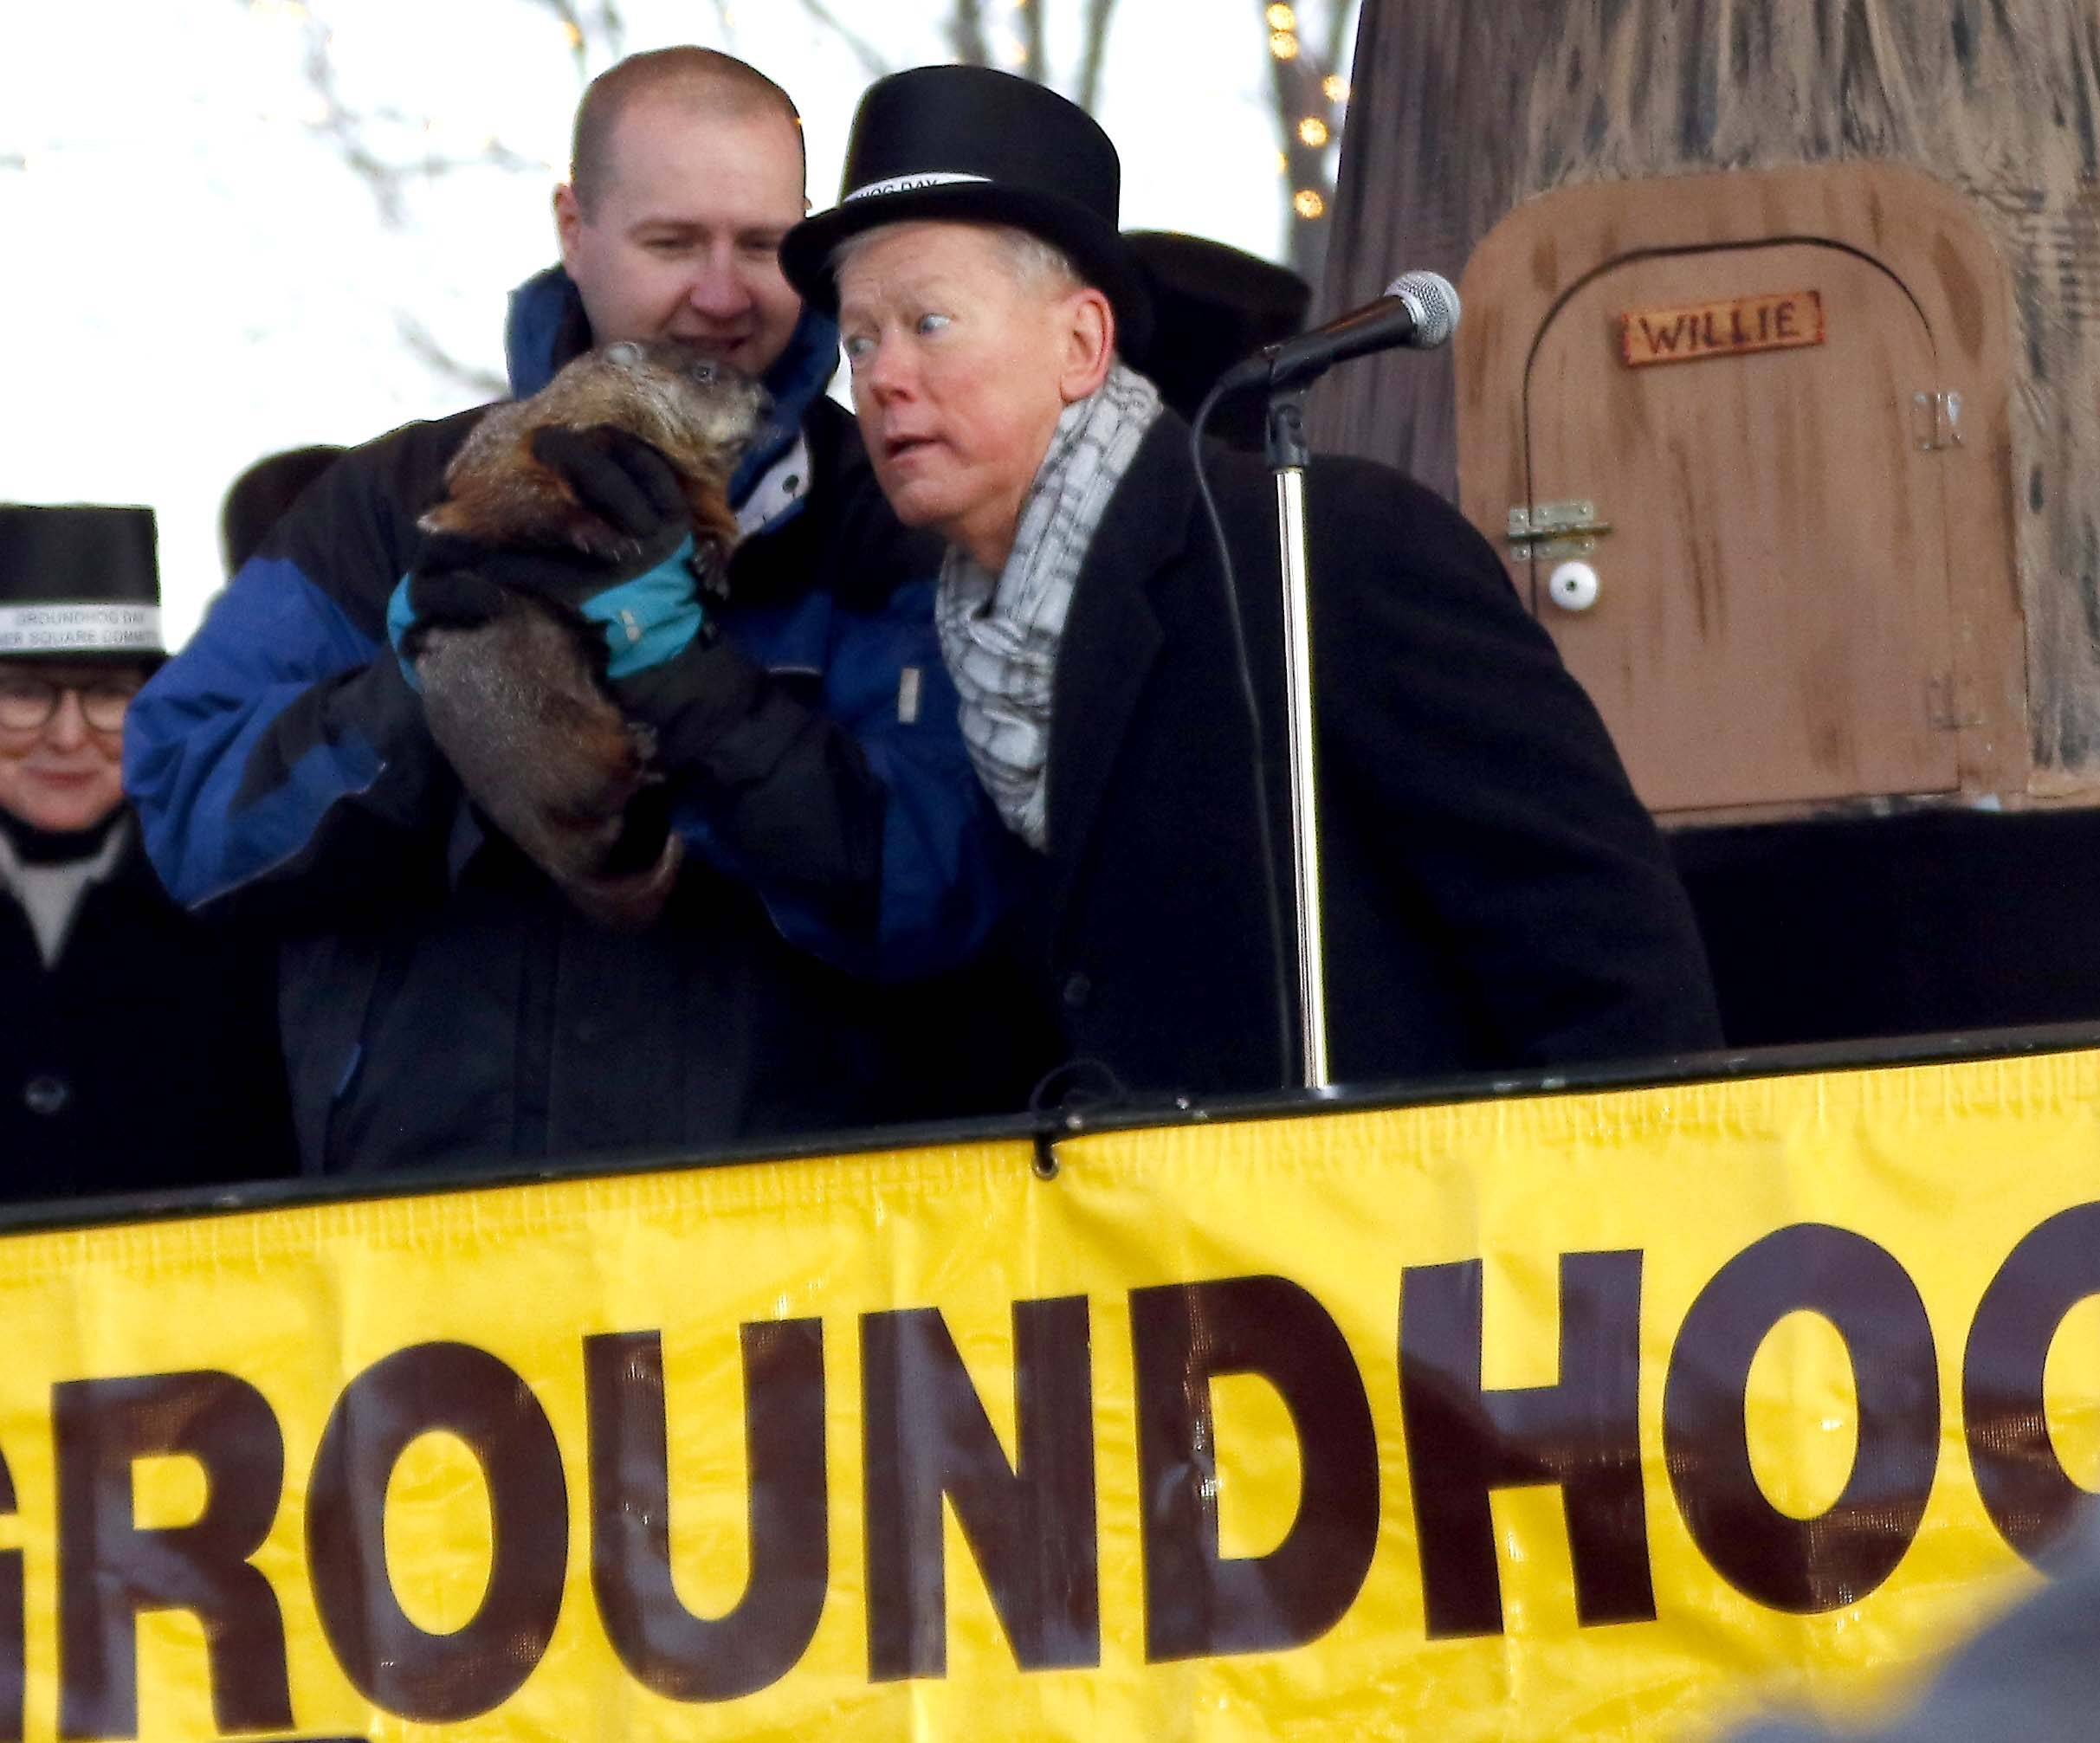 Woodstock Mayor Brian Sager listens to Woodstock Willie, held by Mark Szafran. Willie saw his shadow after emerging from his slumber Friday during the annual Groundhog Day festivities in Woodstock.